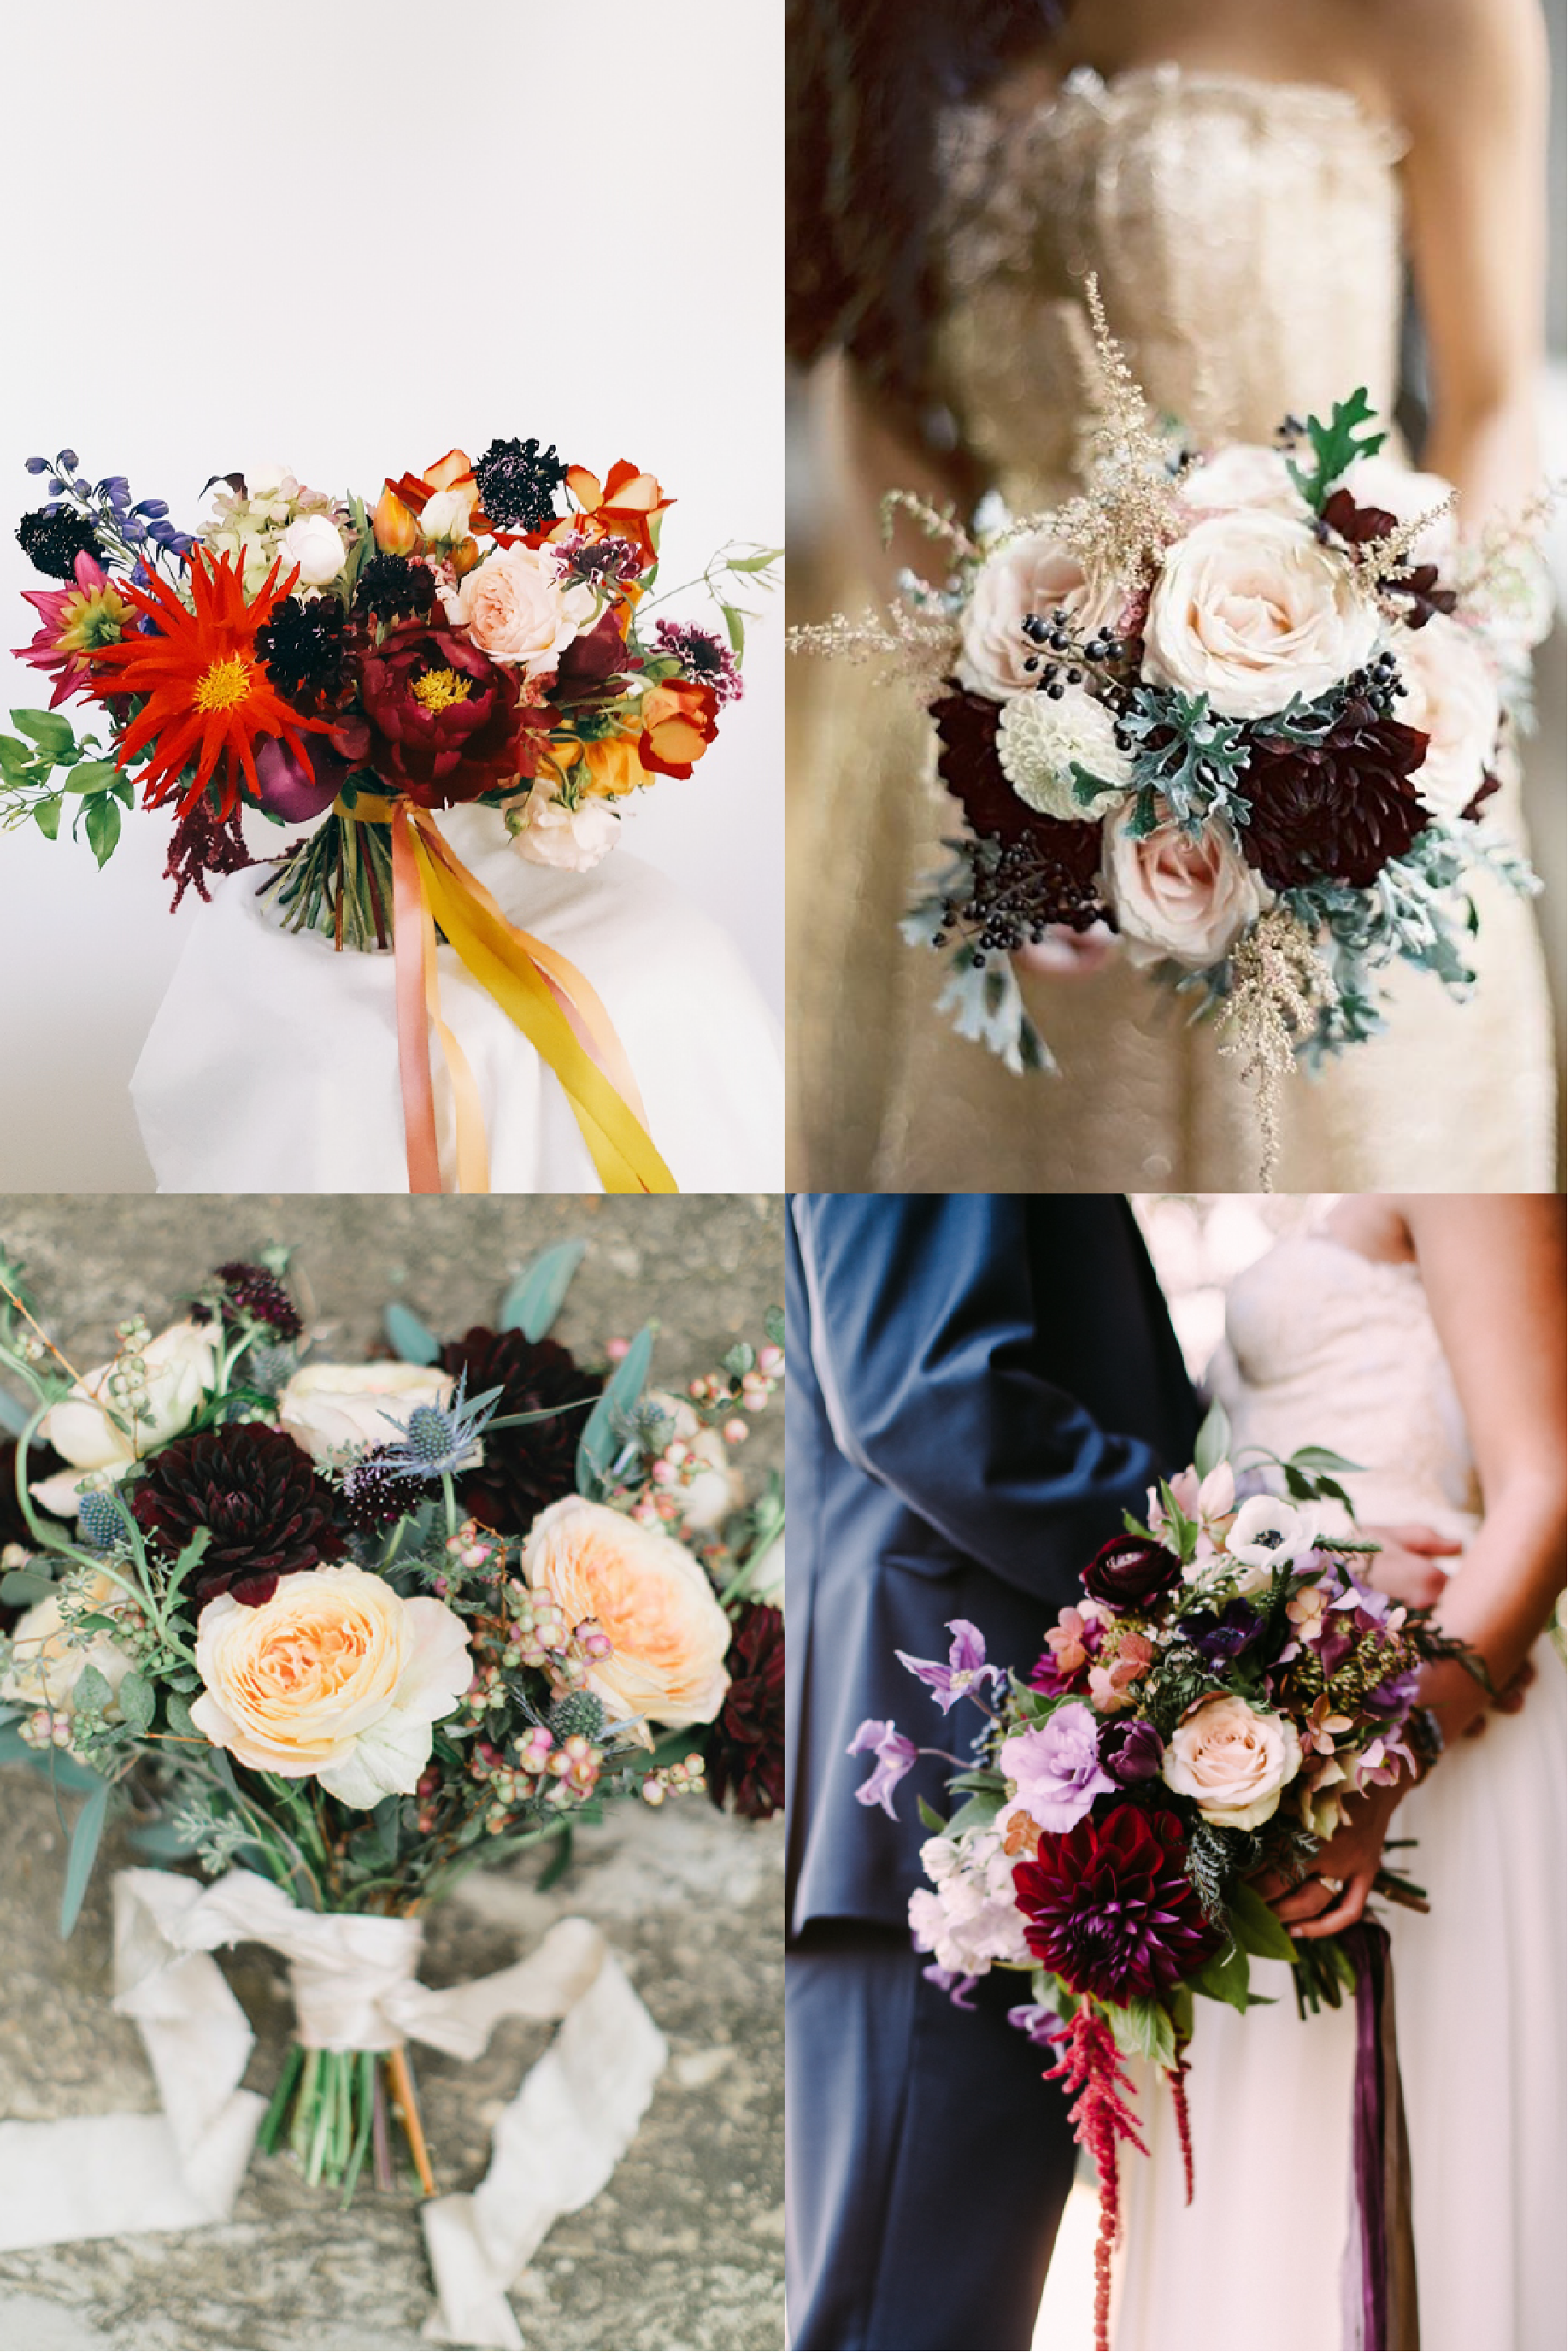 FROM CLOCKWISE, FROM TOP LEFT:  FLOWERS BY  LIME TREE BOWER  ;  PHOTO BY EDWARD OSBORN PHOTOGRAPHY; FLOWERS BY  CAROLINE O'DONNELL  AND PHOTO BY  CAMBRIA GRACE PHOTOGRAPHY ; FLOWERS BY   WHIMSICAL FLORAL DESIGN  AND PHOTO BY   RACHEL MAY PHOTOGRAPHY .